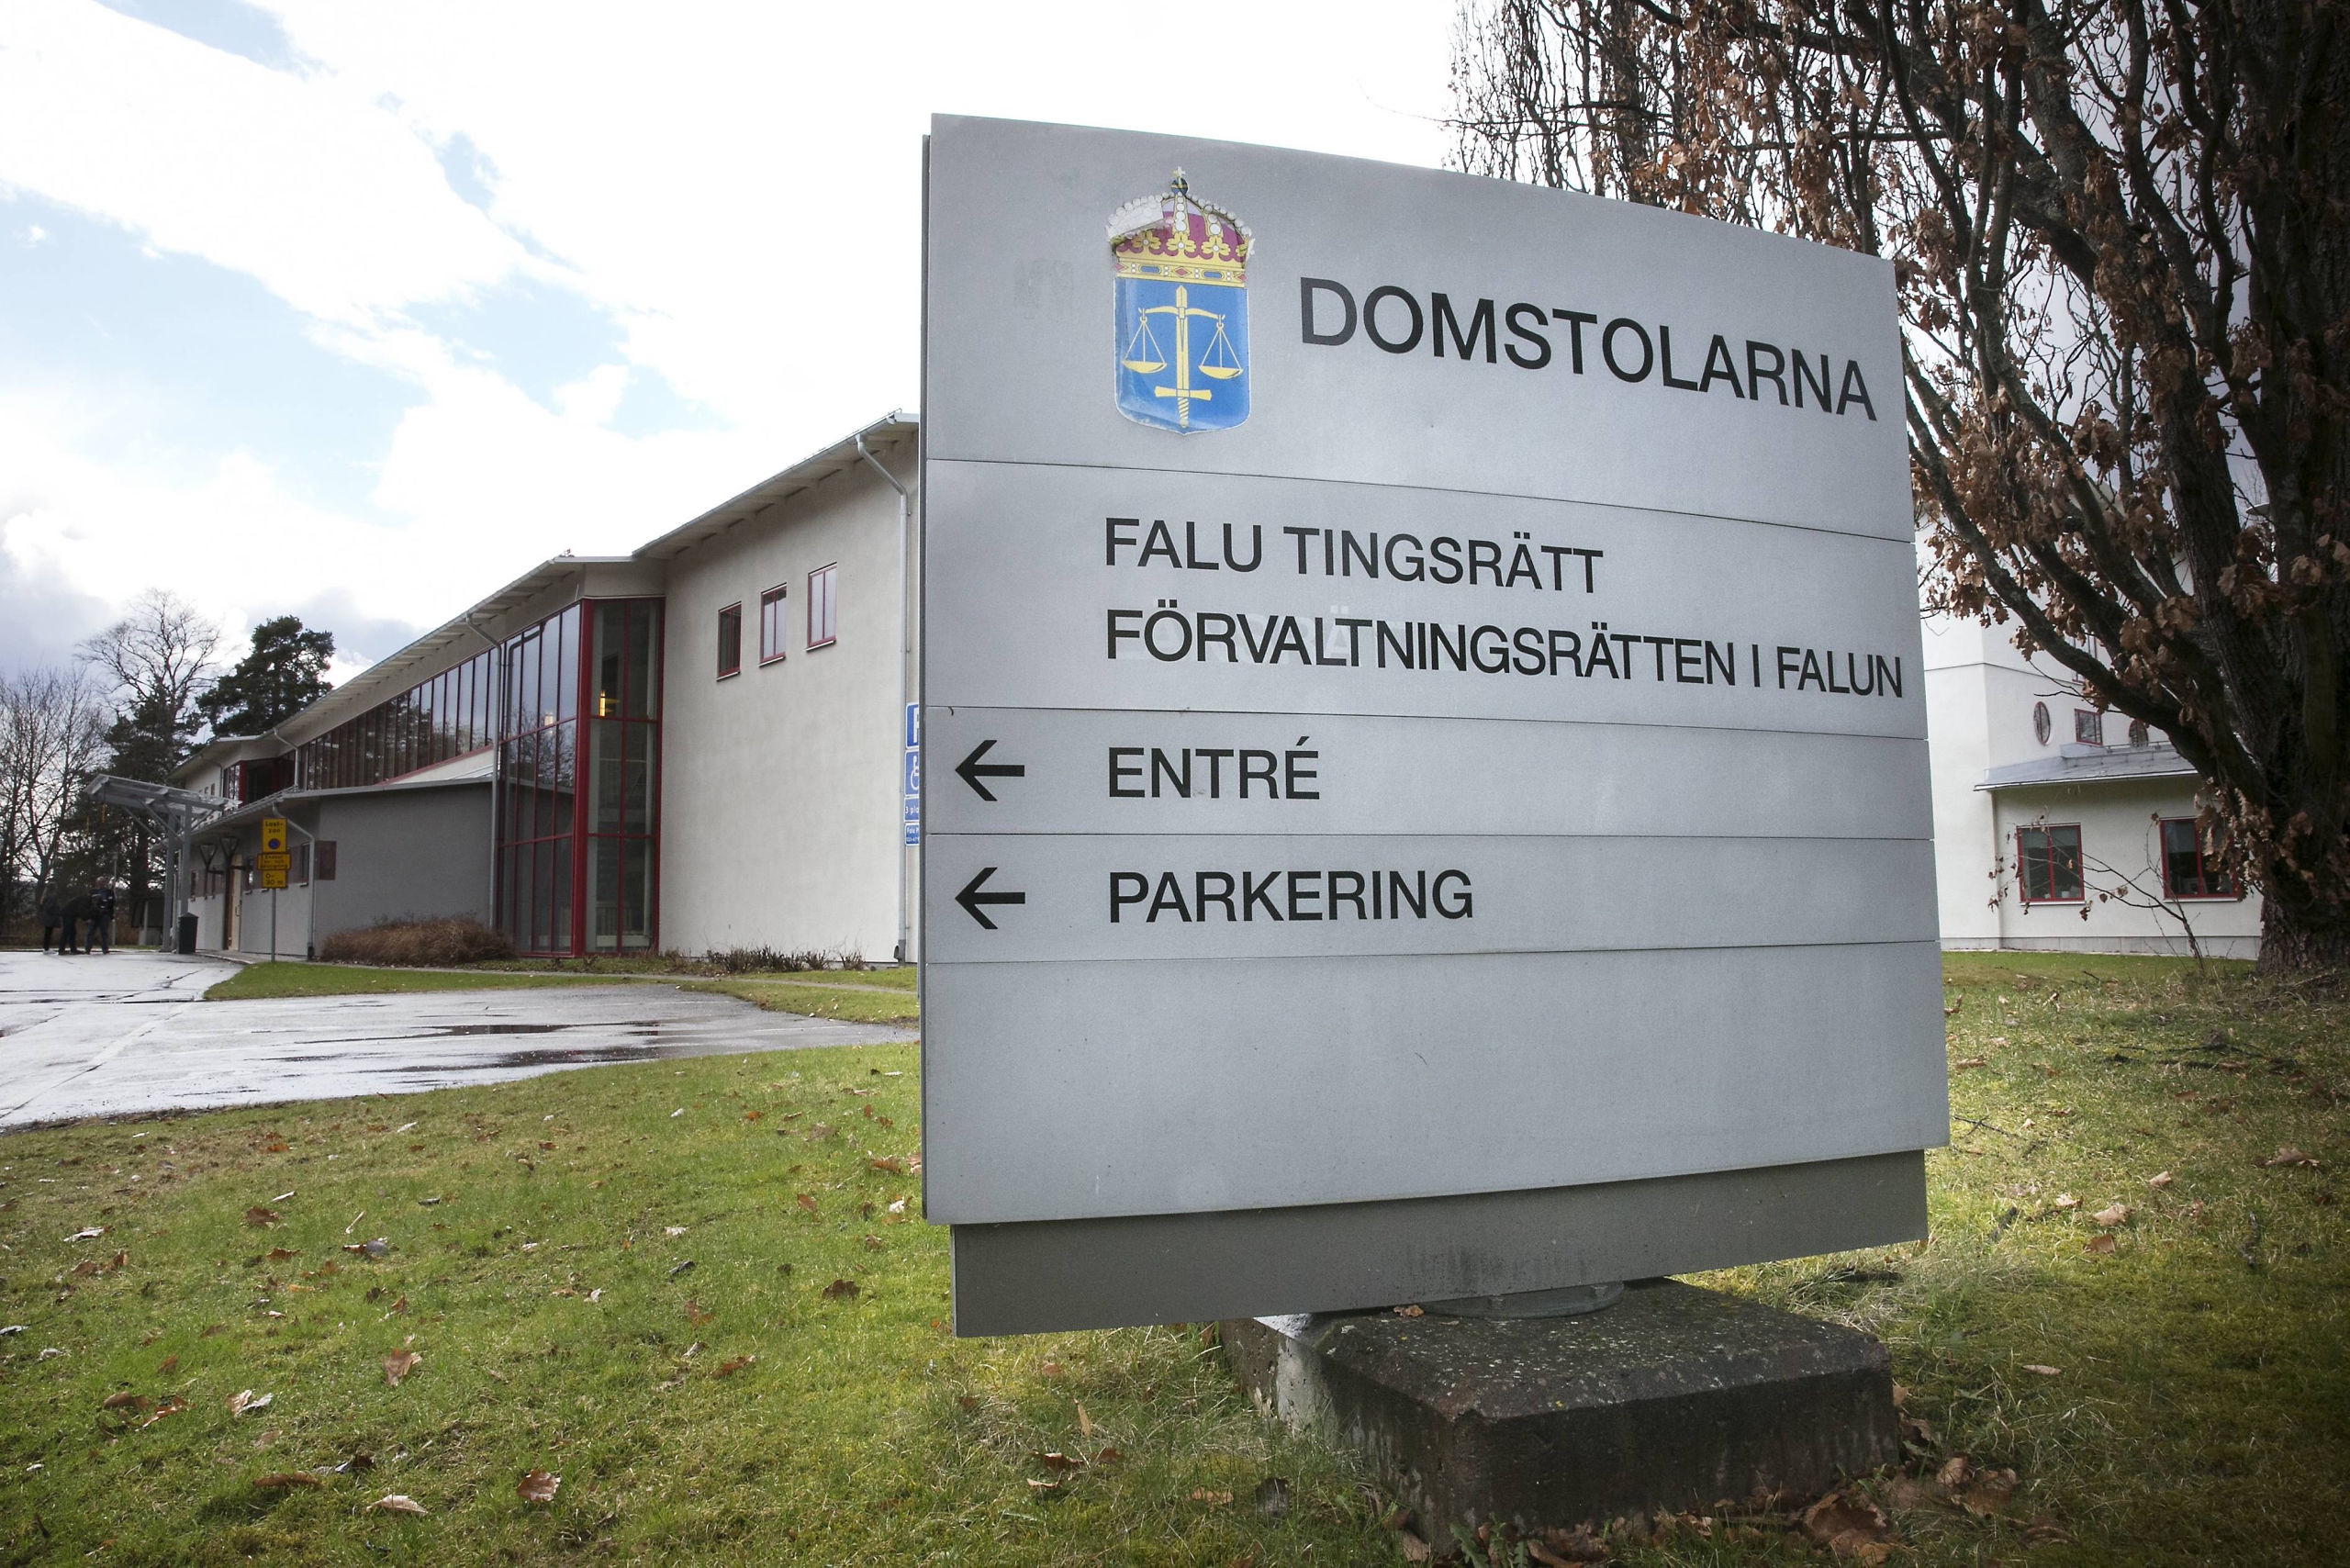 Dagsboter for valdsam polis